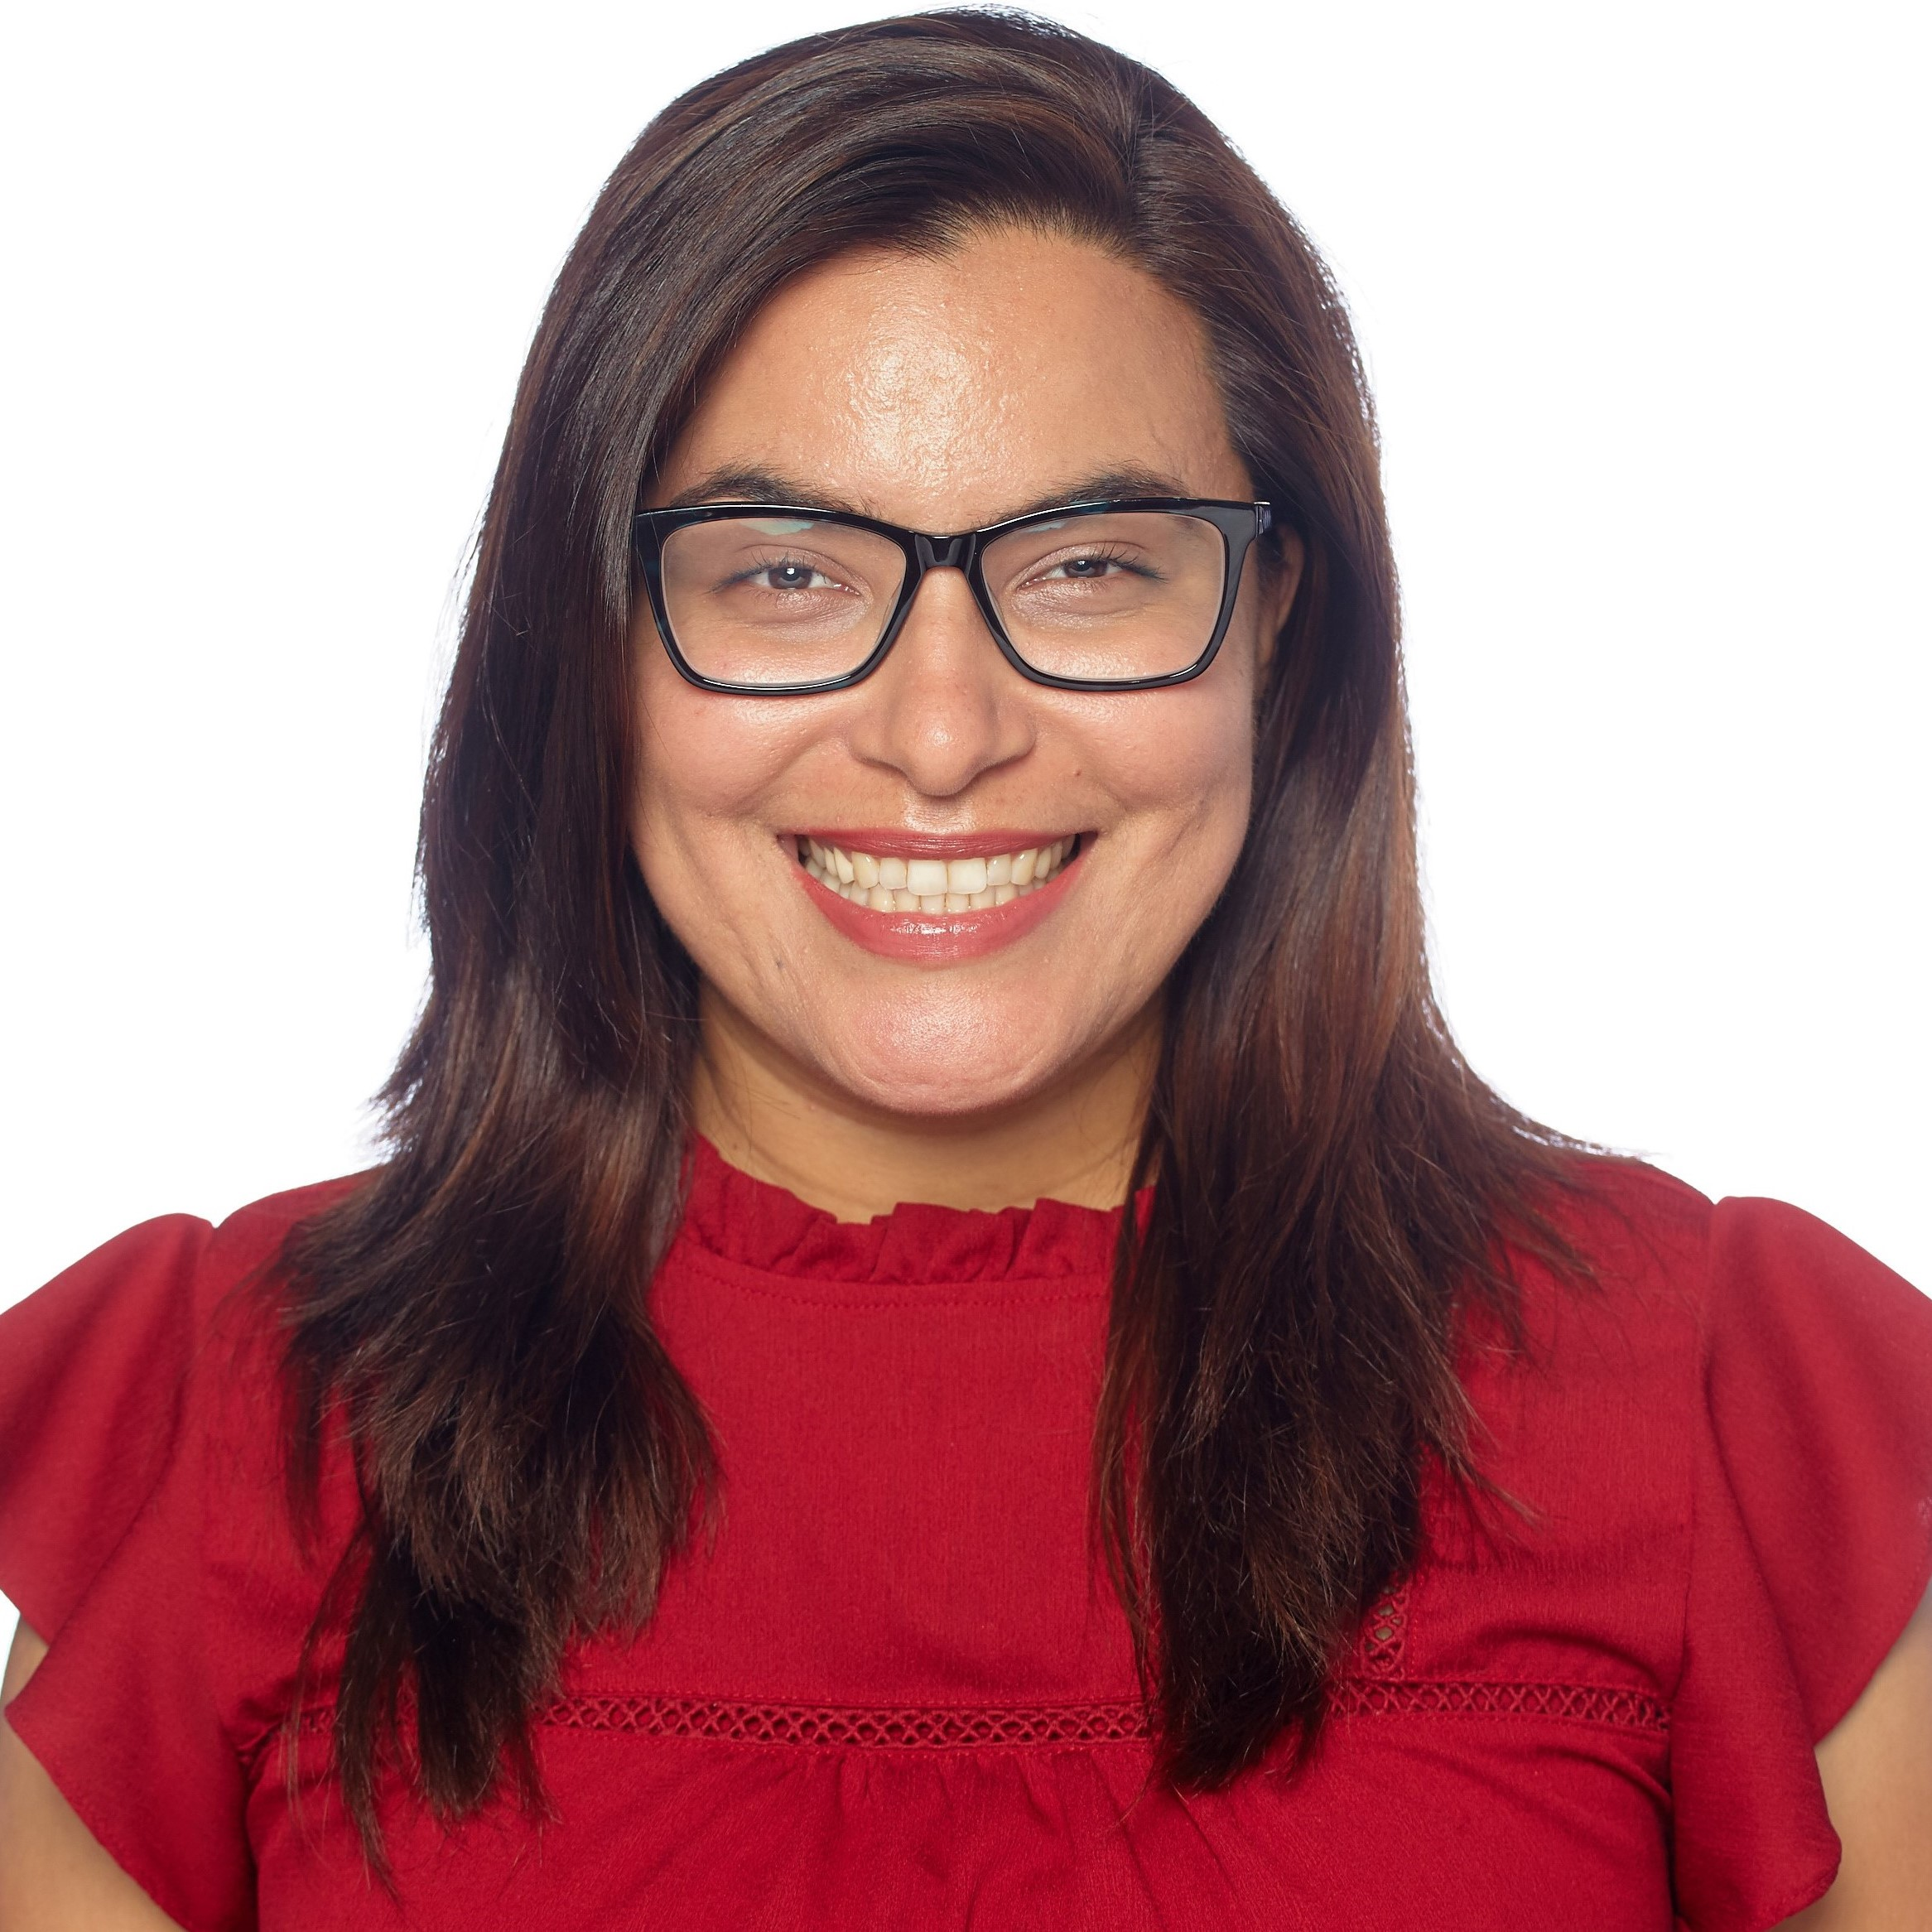 Diana Matamoros, PIHRA Emerging Leaders Volunteer